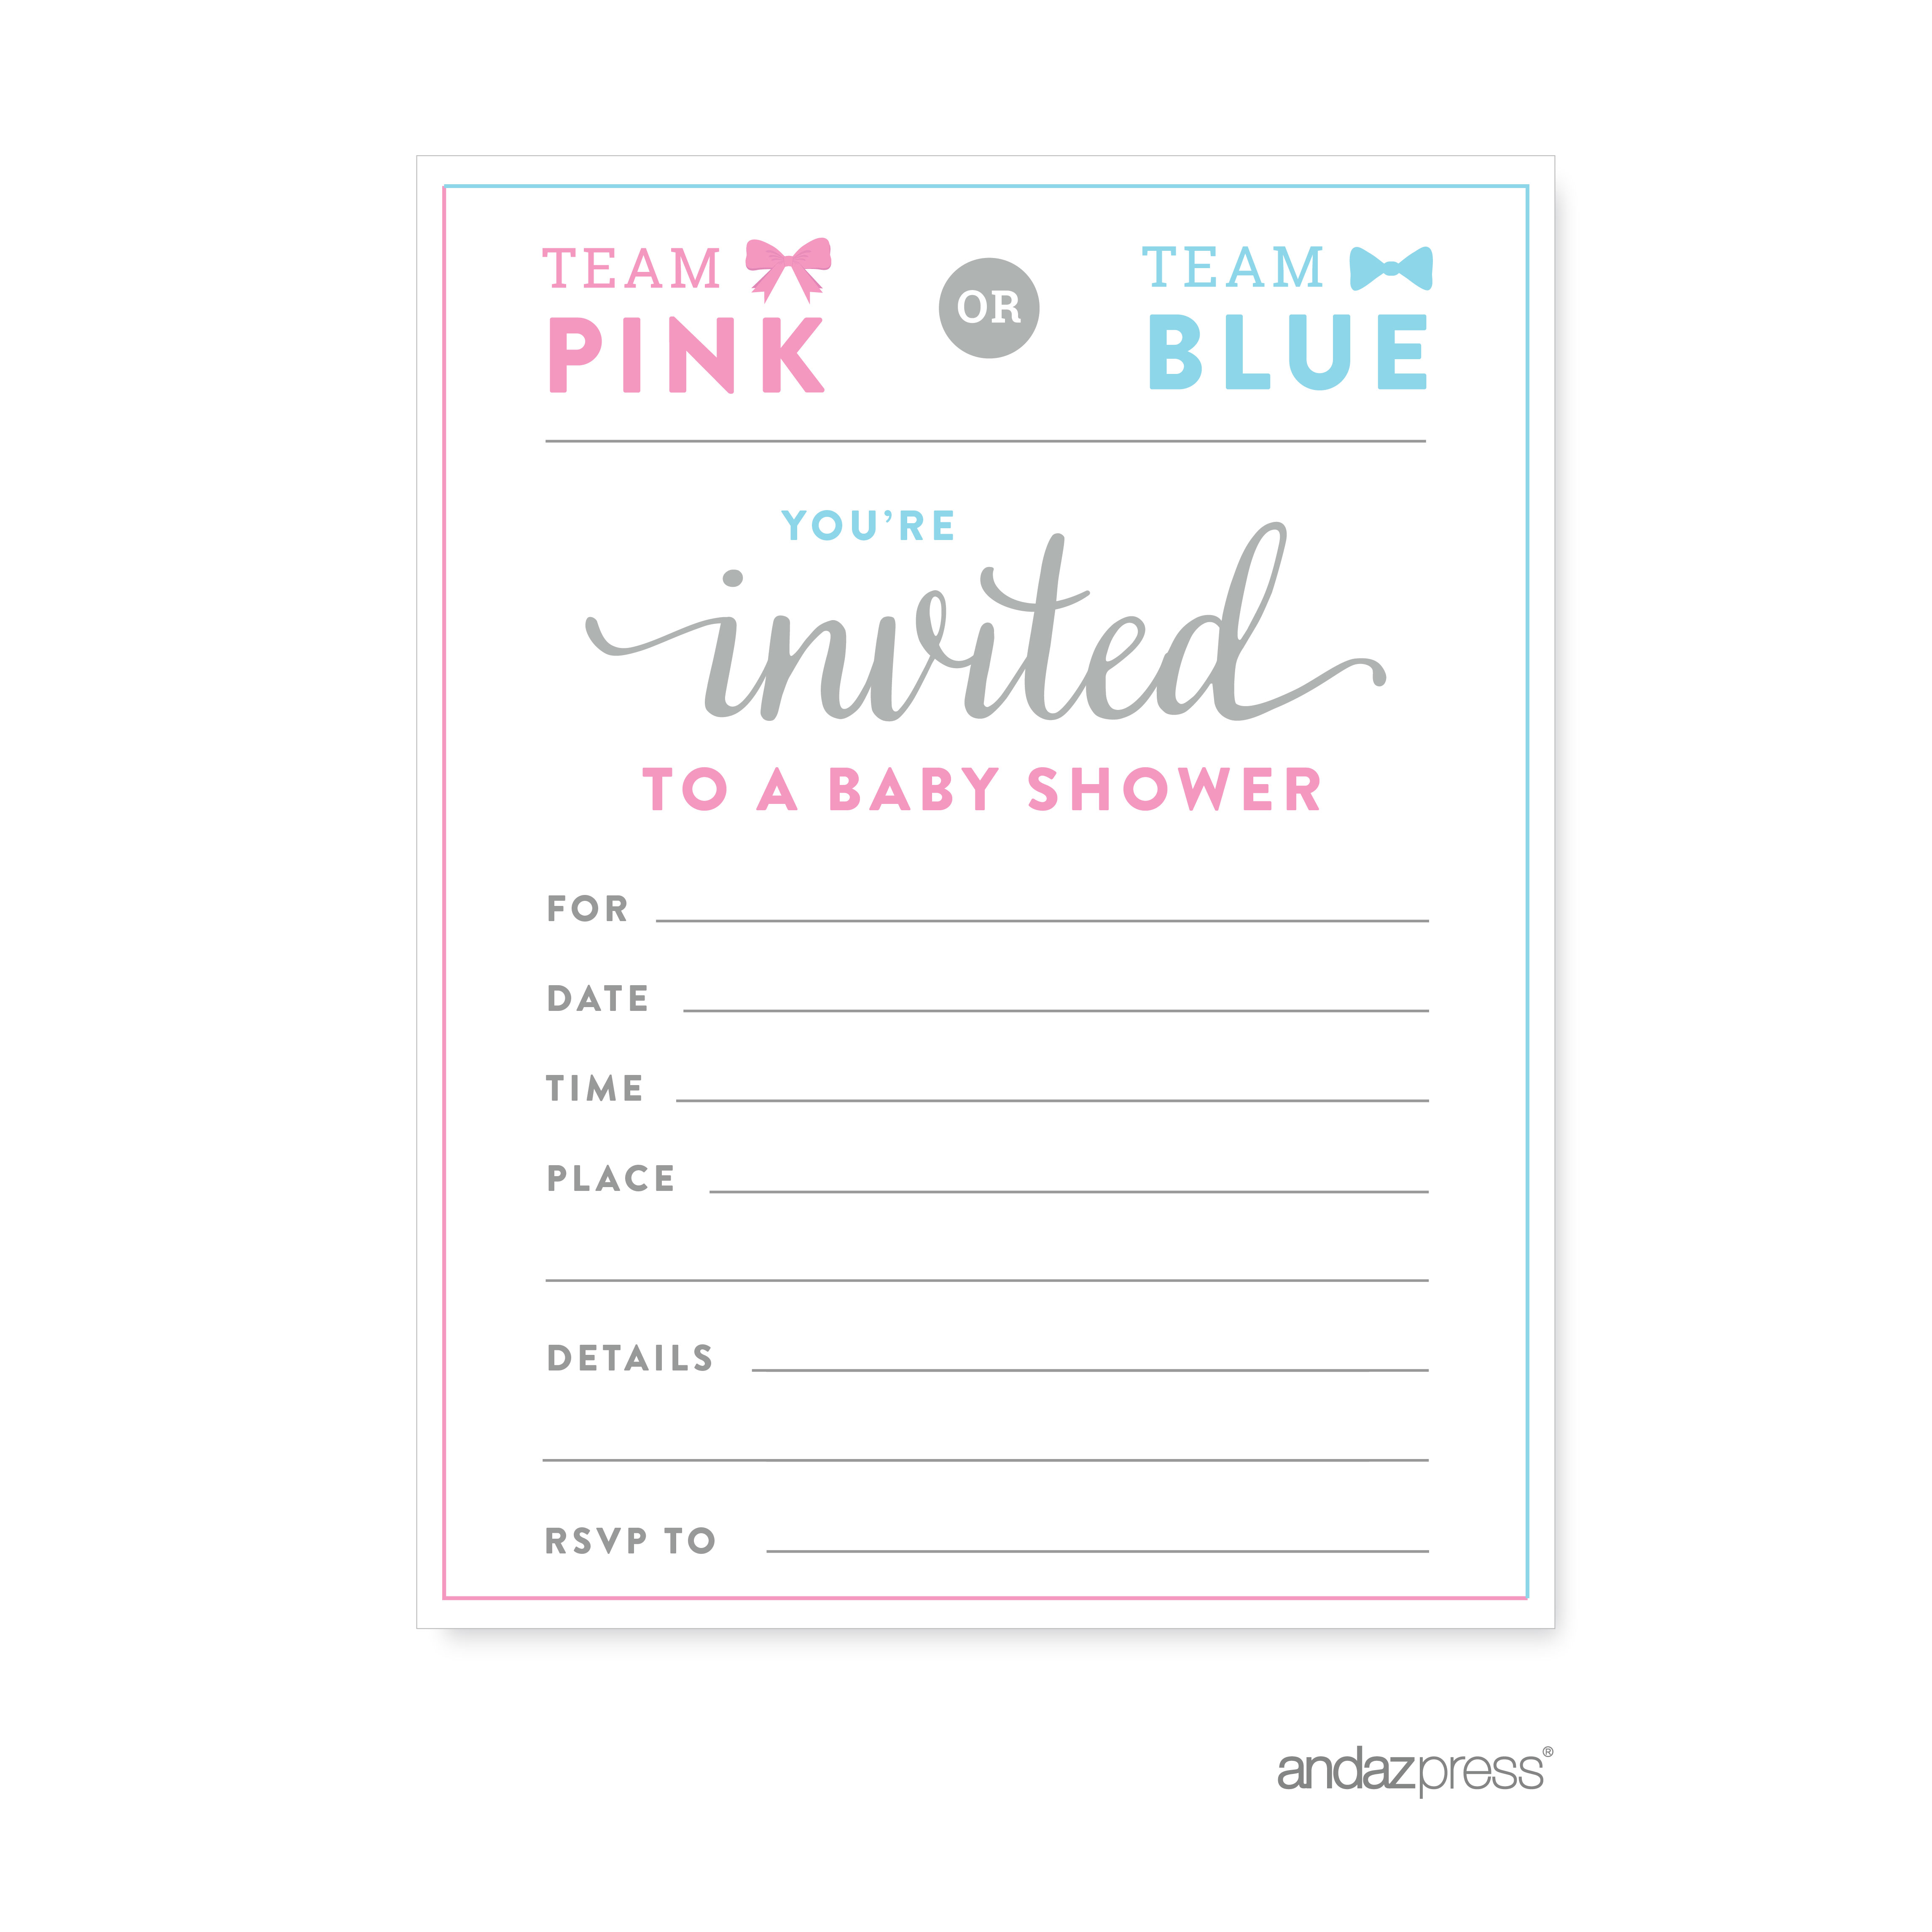 Invitations Team Pink Blue Gender Reveal Baby Shower Party Blank